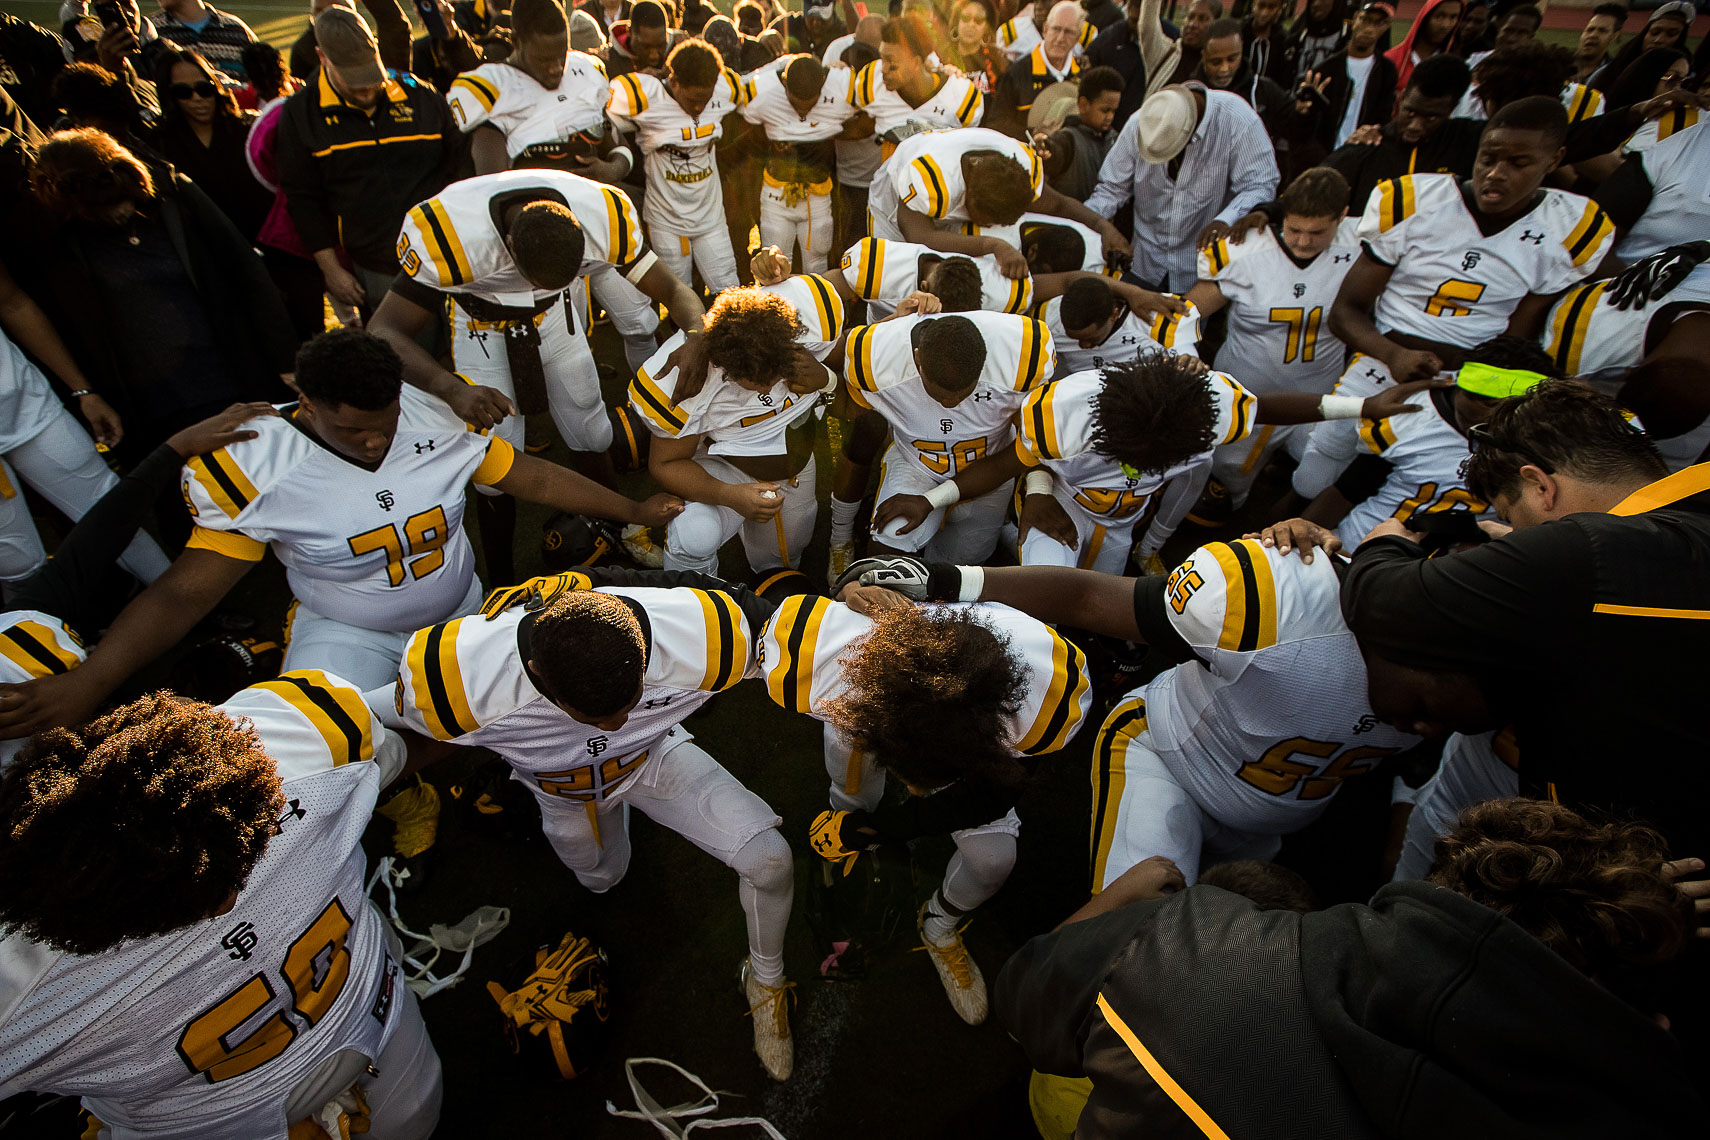 stfrances19_ St Frances Academy Panthers football Baltimore City poverty ESPN documentary MIAA Champions youth football team coached by former Gilman and Michigan football coach Biff Poggi Under Armour football team prayer